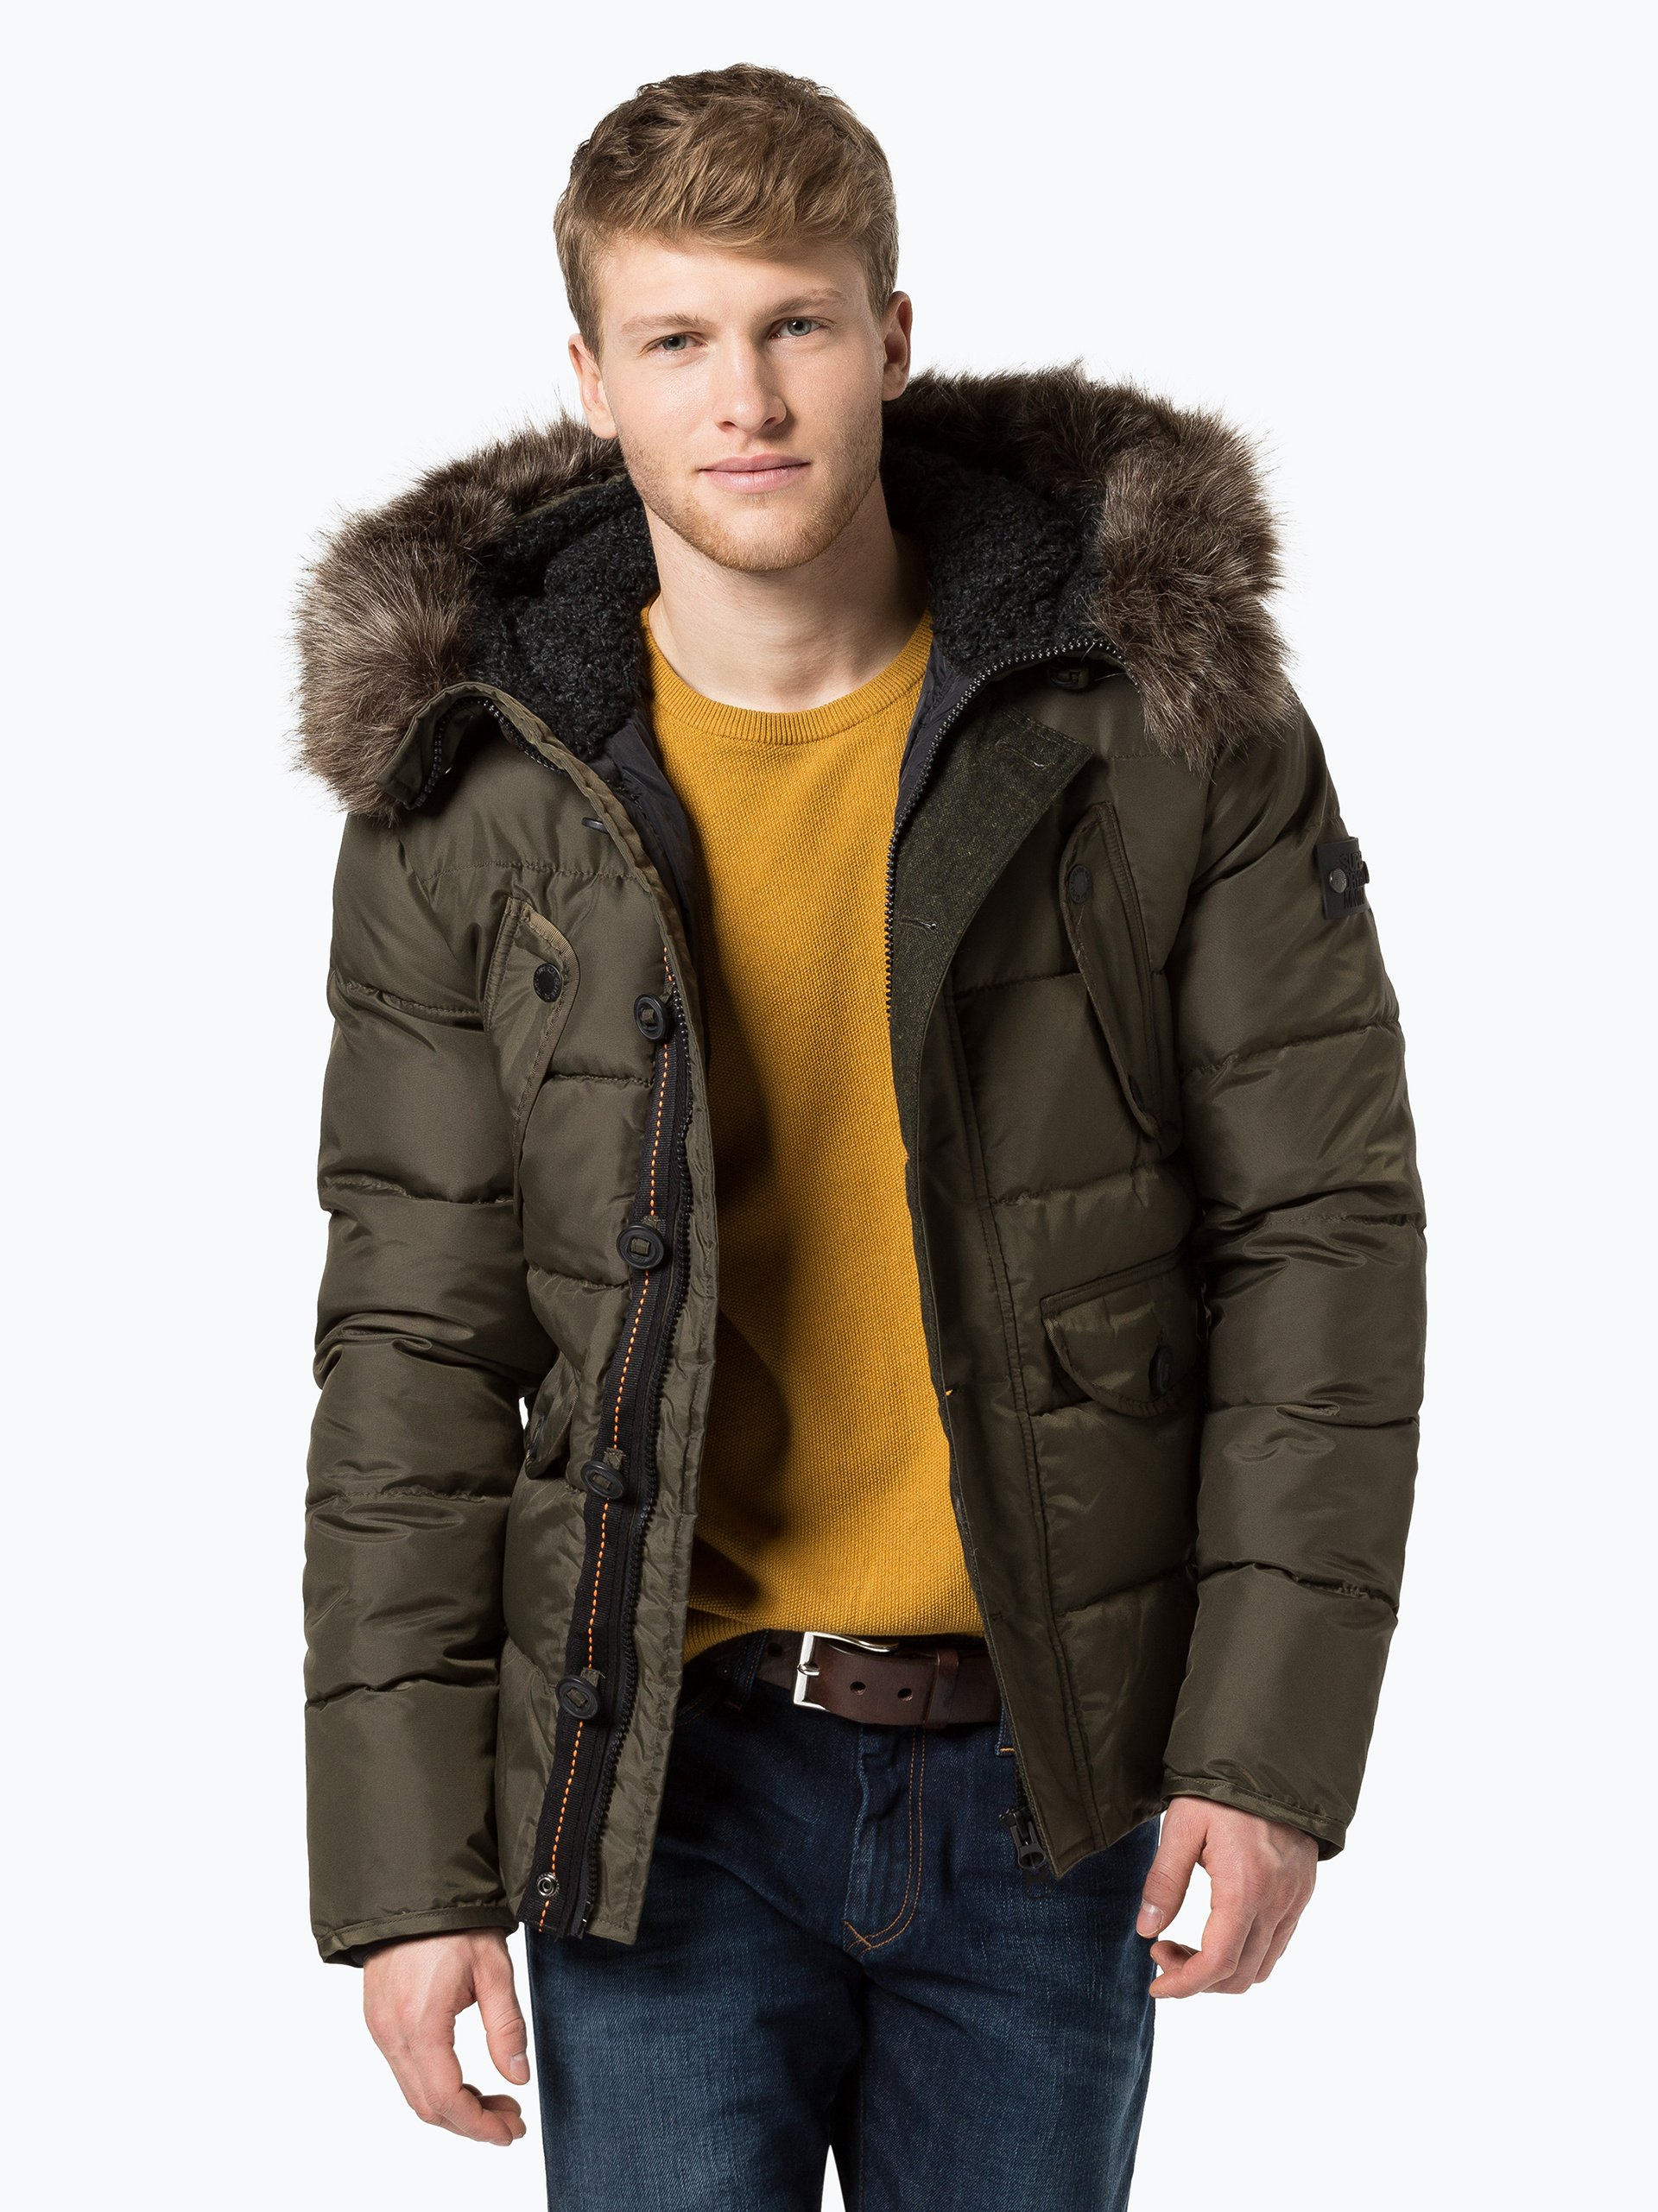 superdry herren jacke chinook khaki uni online kaufen. Black Bedroom Furniture Sets. Home Design Ideas